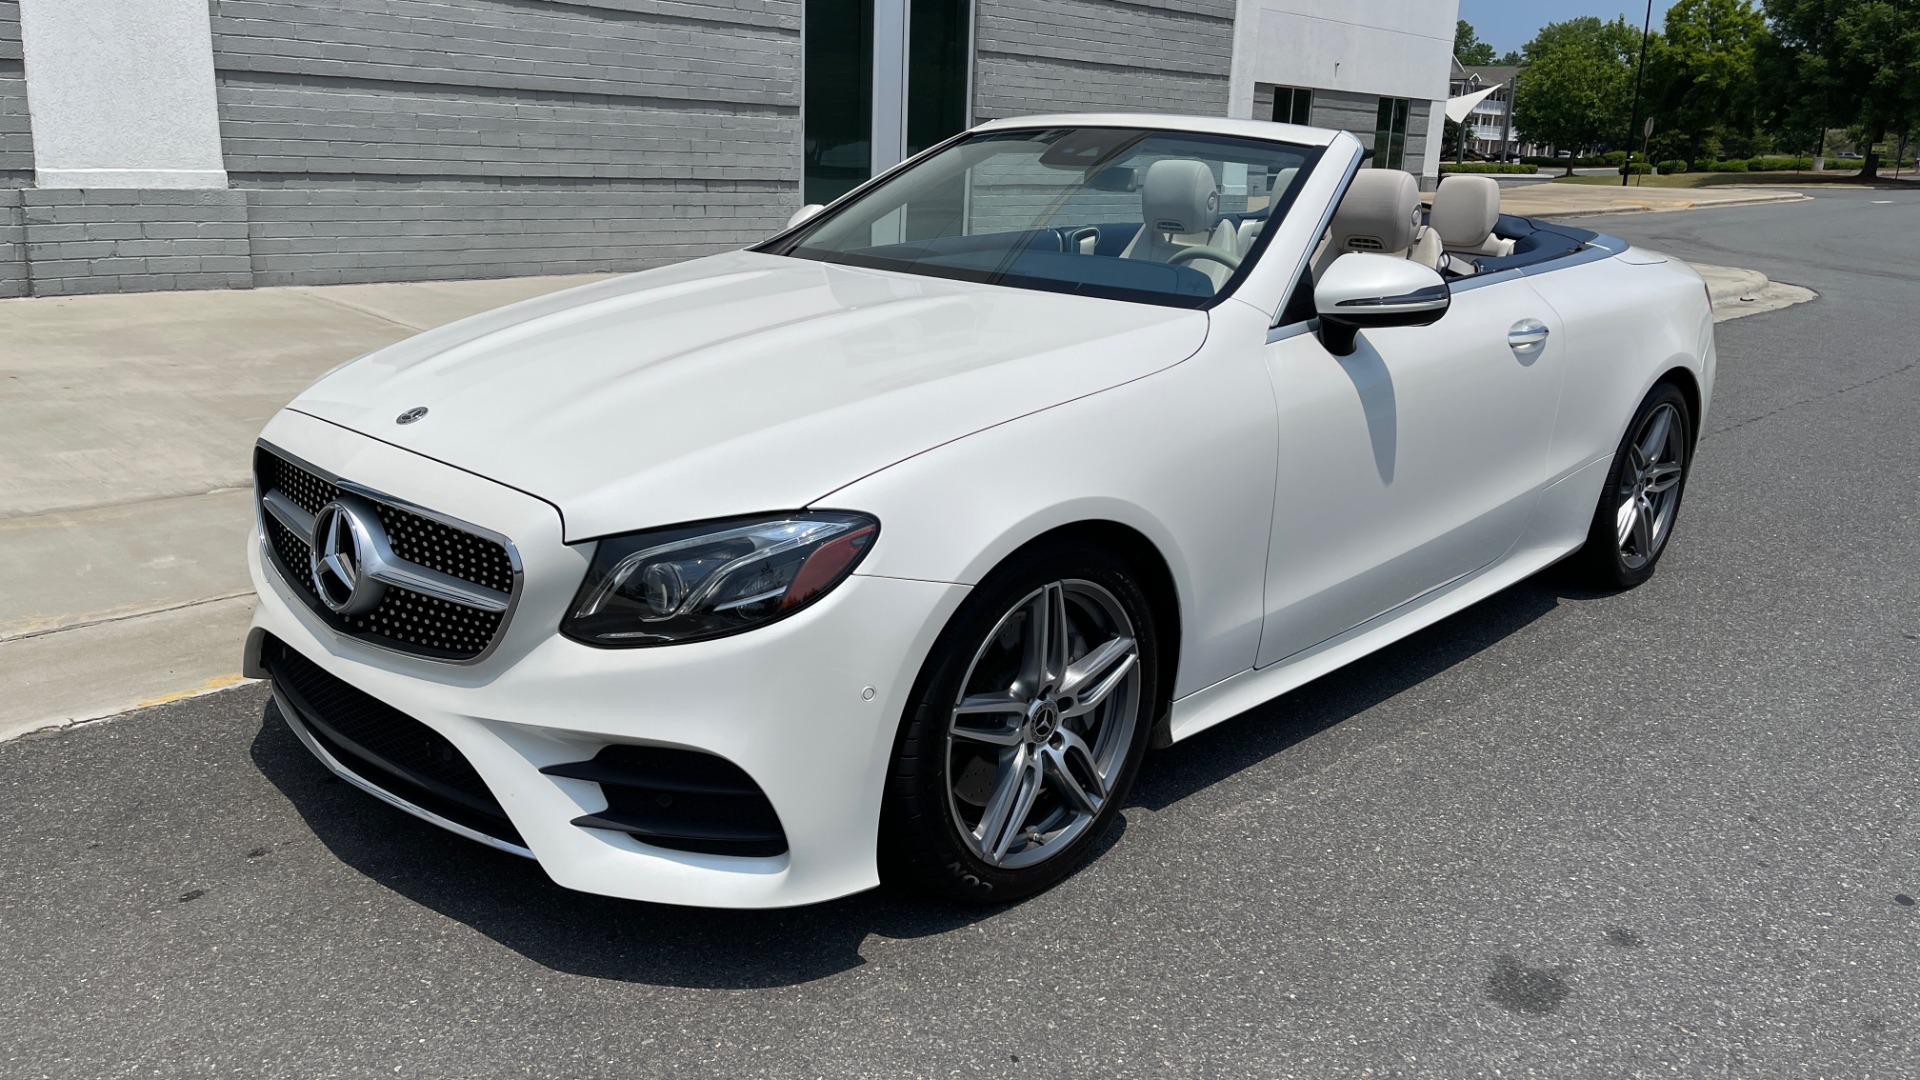 Used 2018 Mercedes-Benz E-CLASS E 400 CABRIOLET / PREM PKG / AMG LINE / NAV / REARVIEW for sale Sold at Formula Imports in Charlotte NC 28227 1